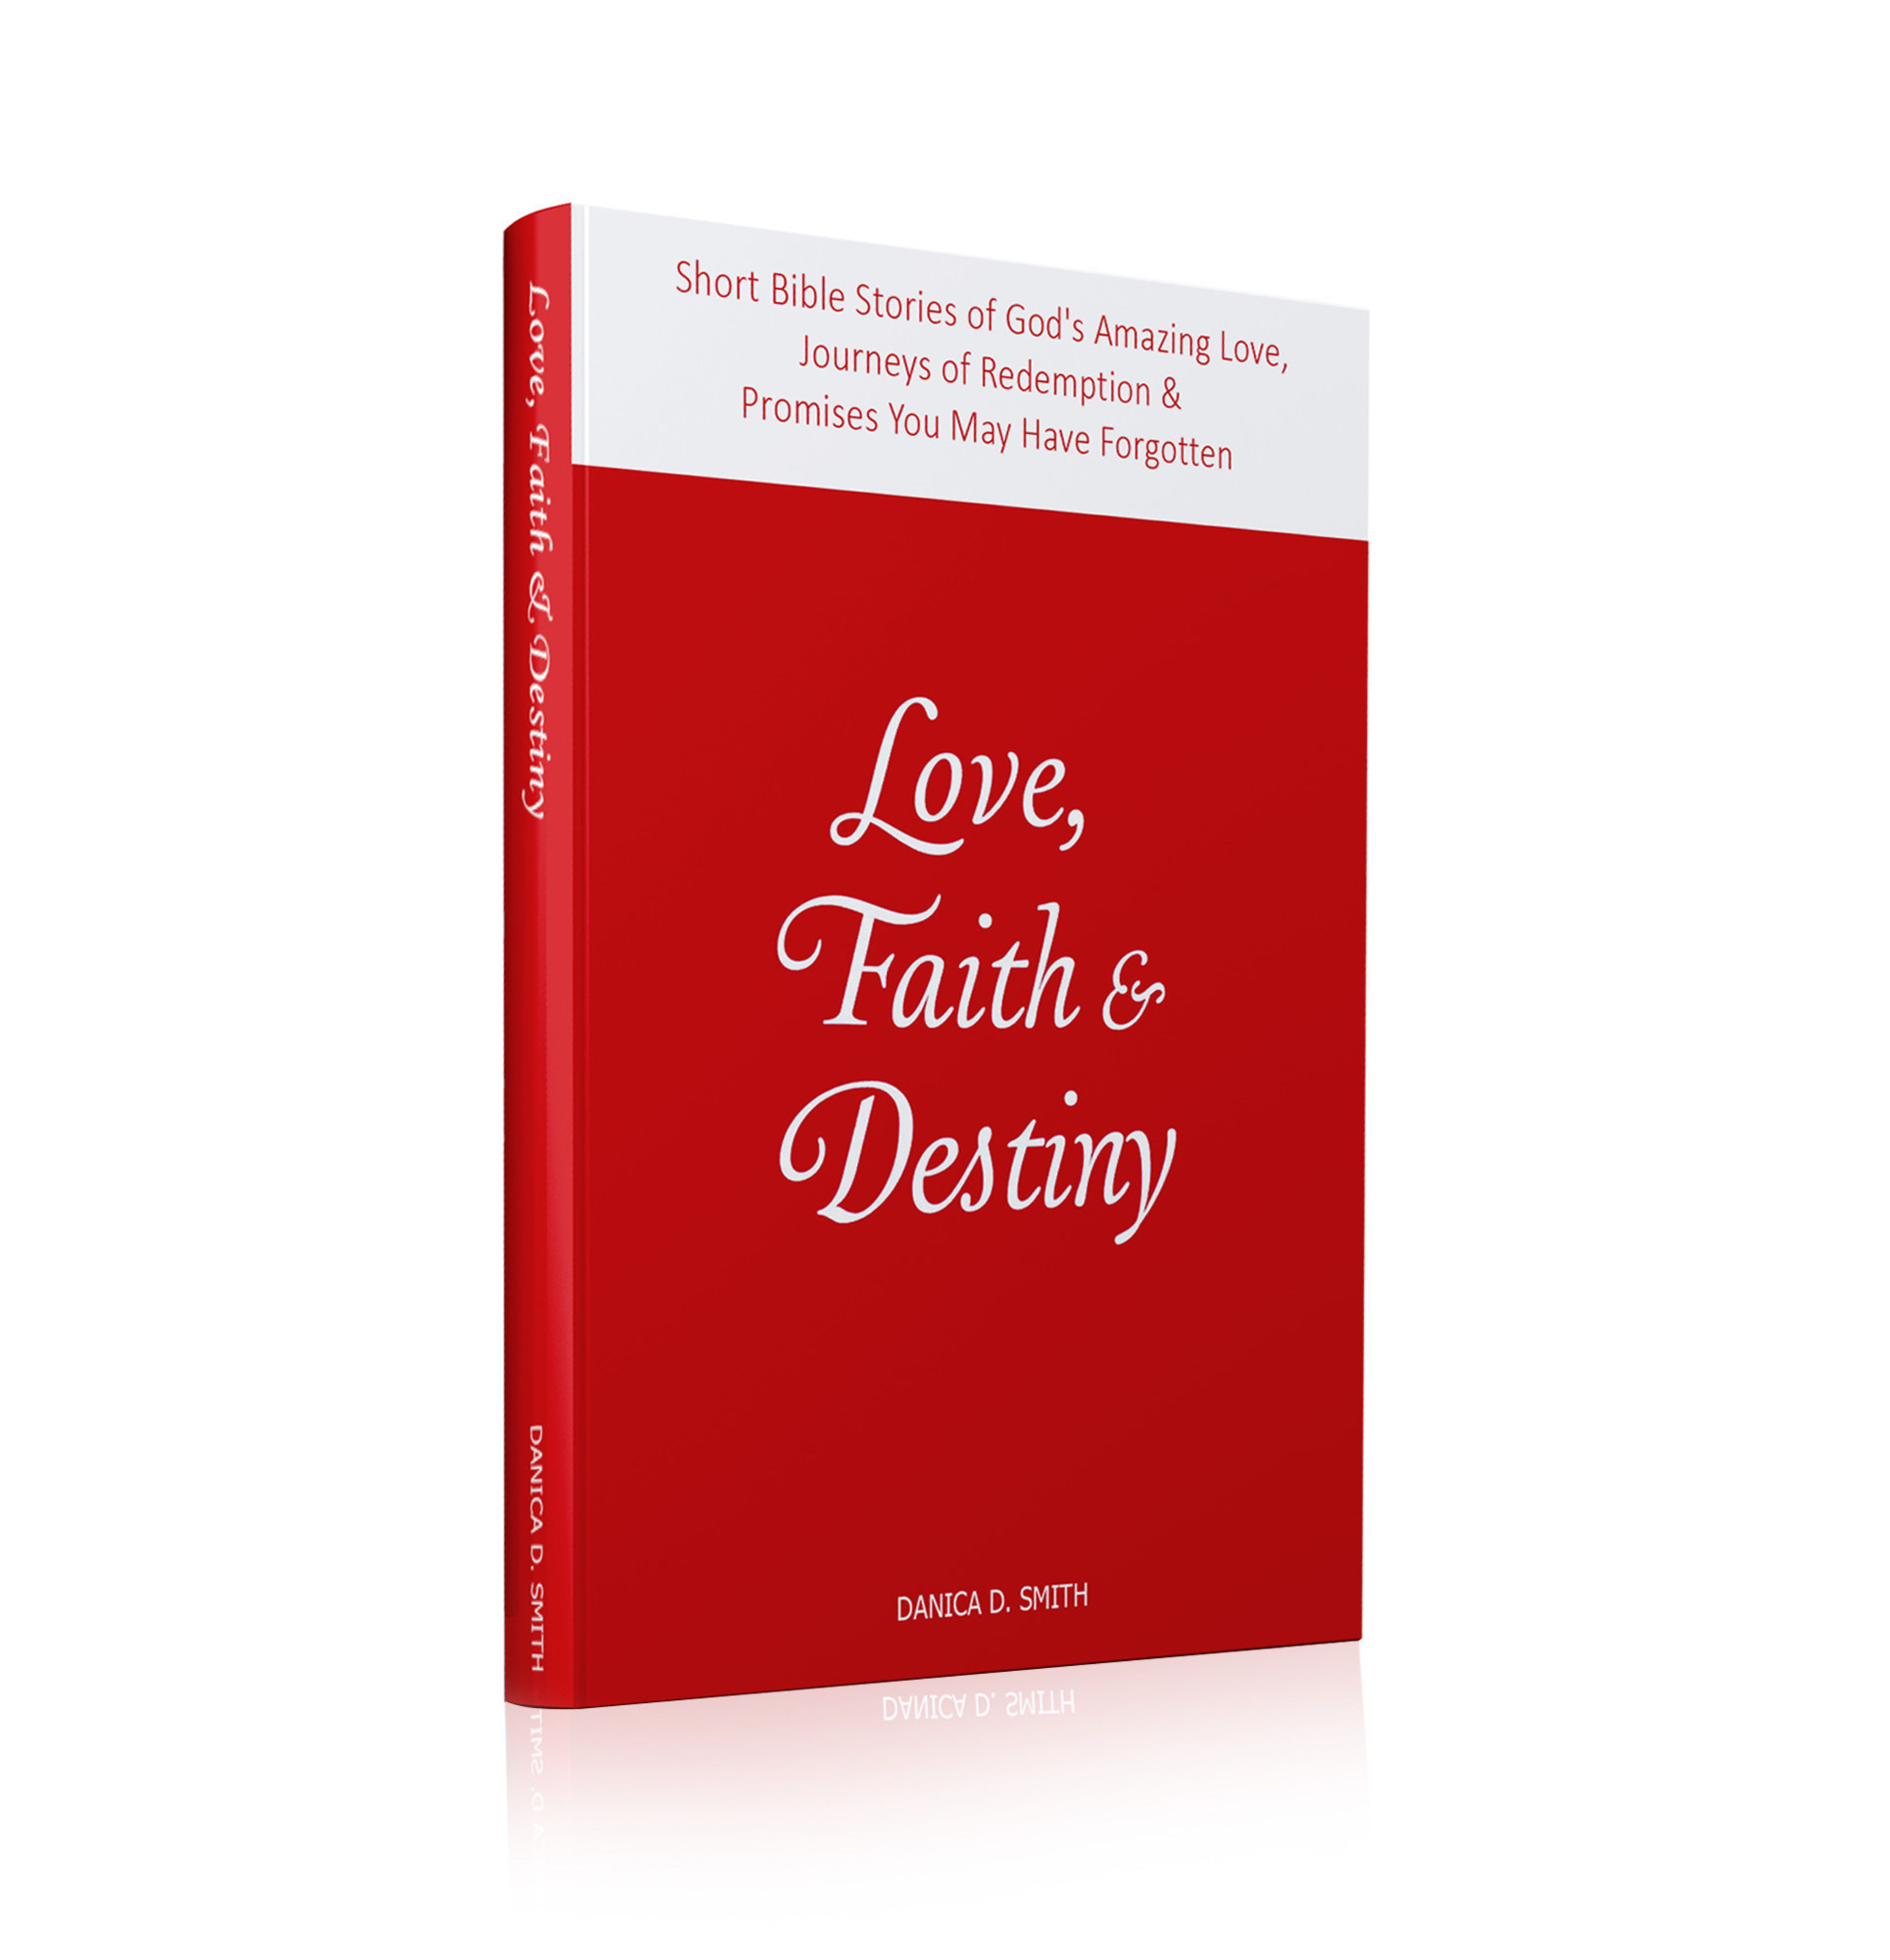 Love, Faith & Destiny from Author Danica D. Smith Gives Christians the Chance to Truly Connect with